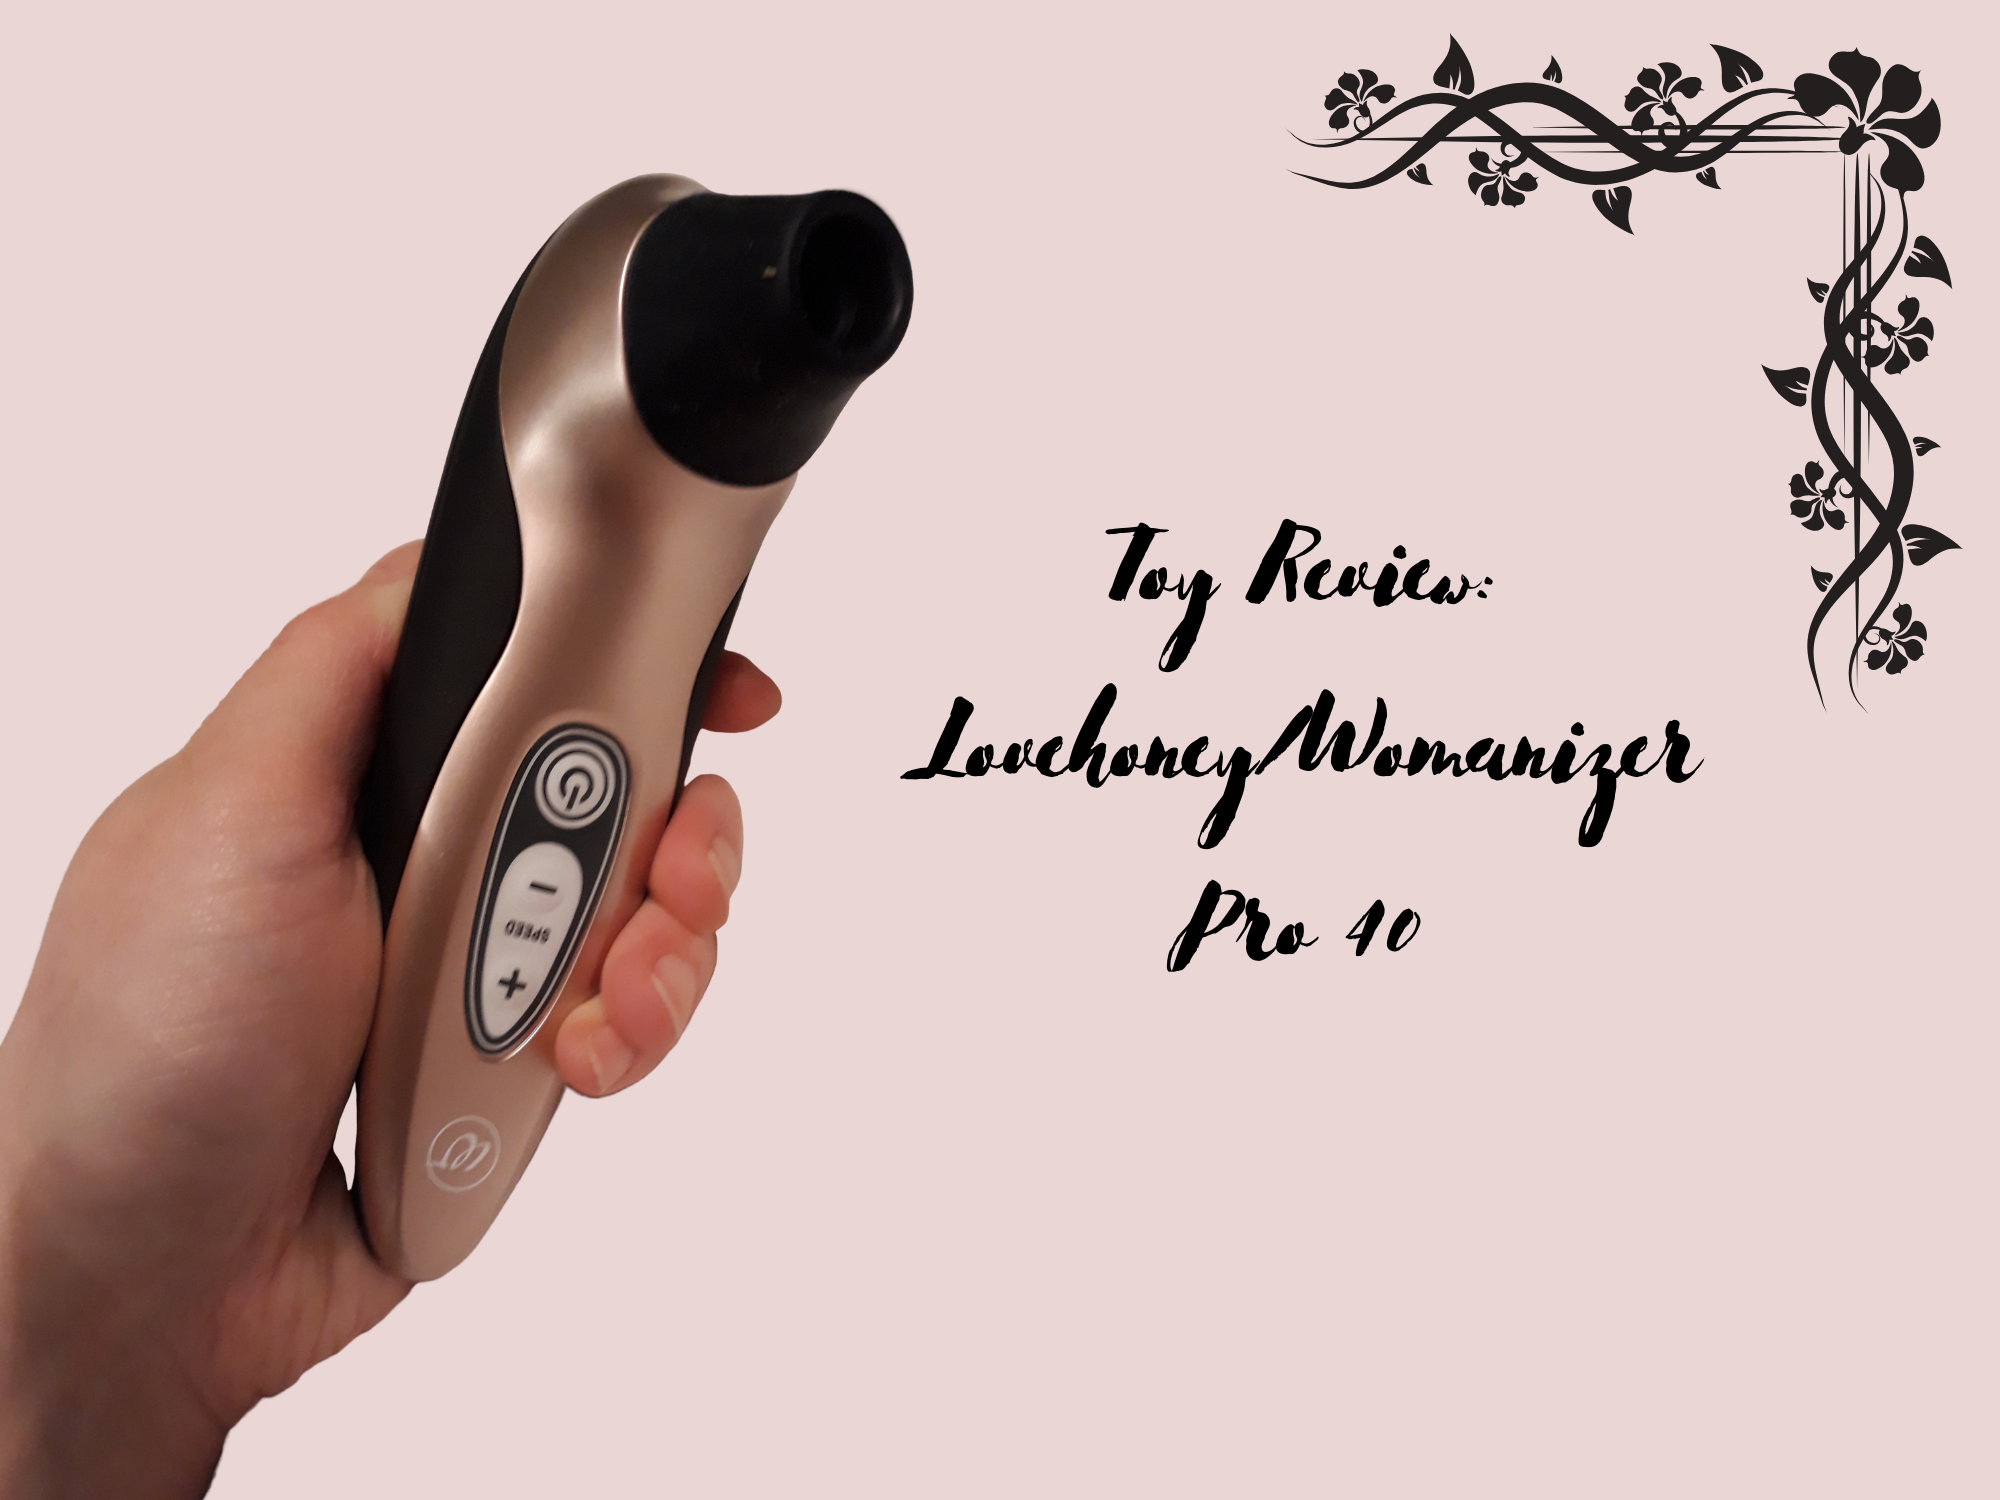 [Toy Review] Womanizer x Lovehoney Pro40 Clitoral Stimulator